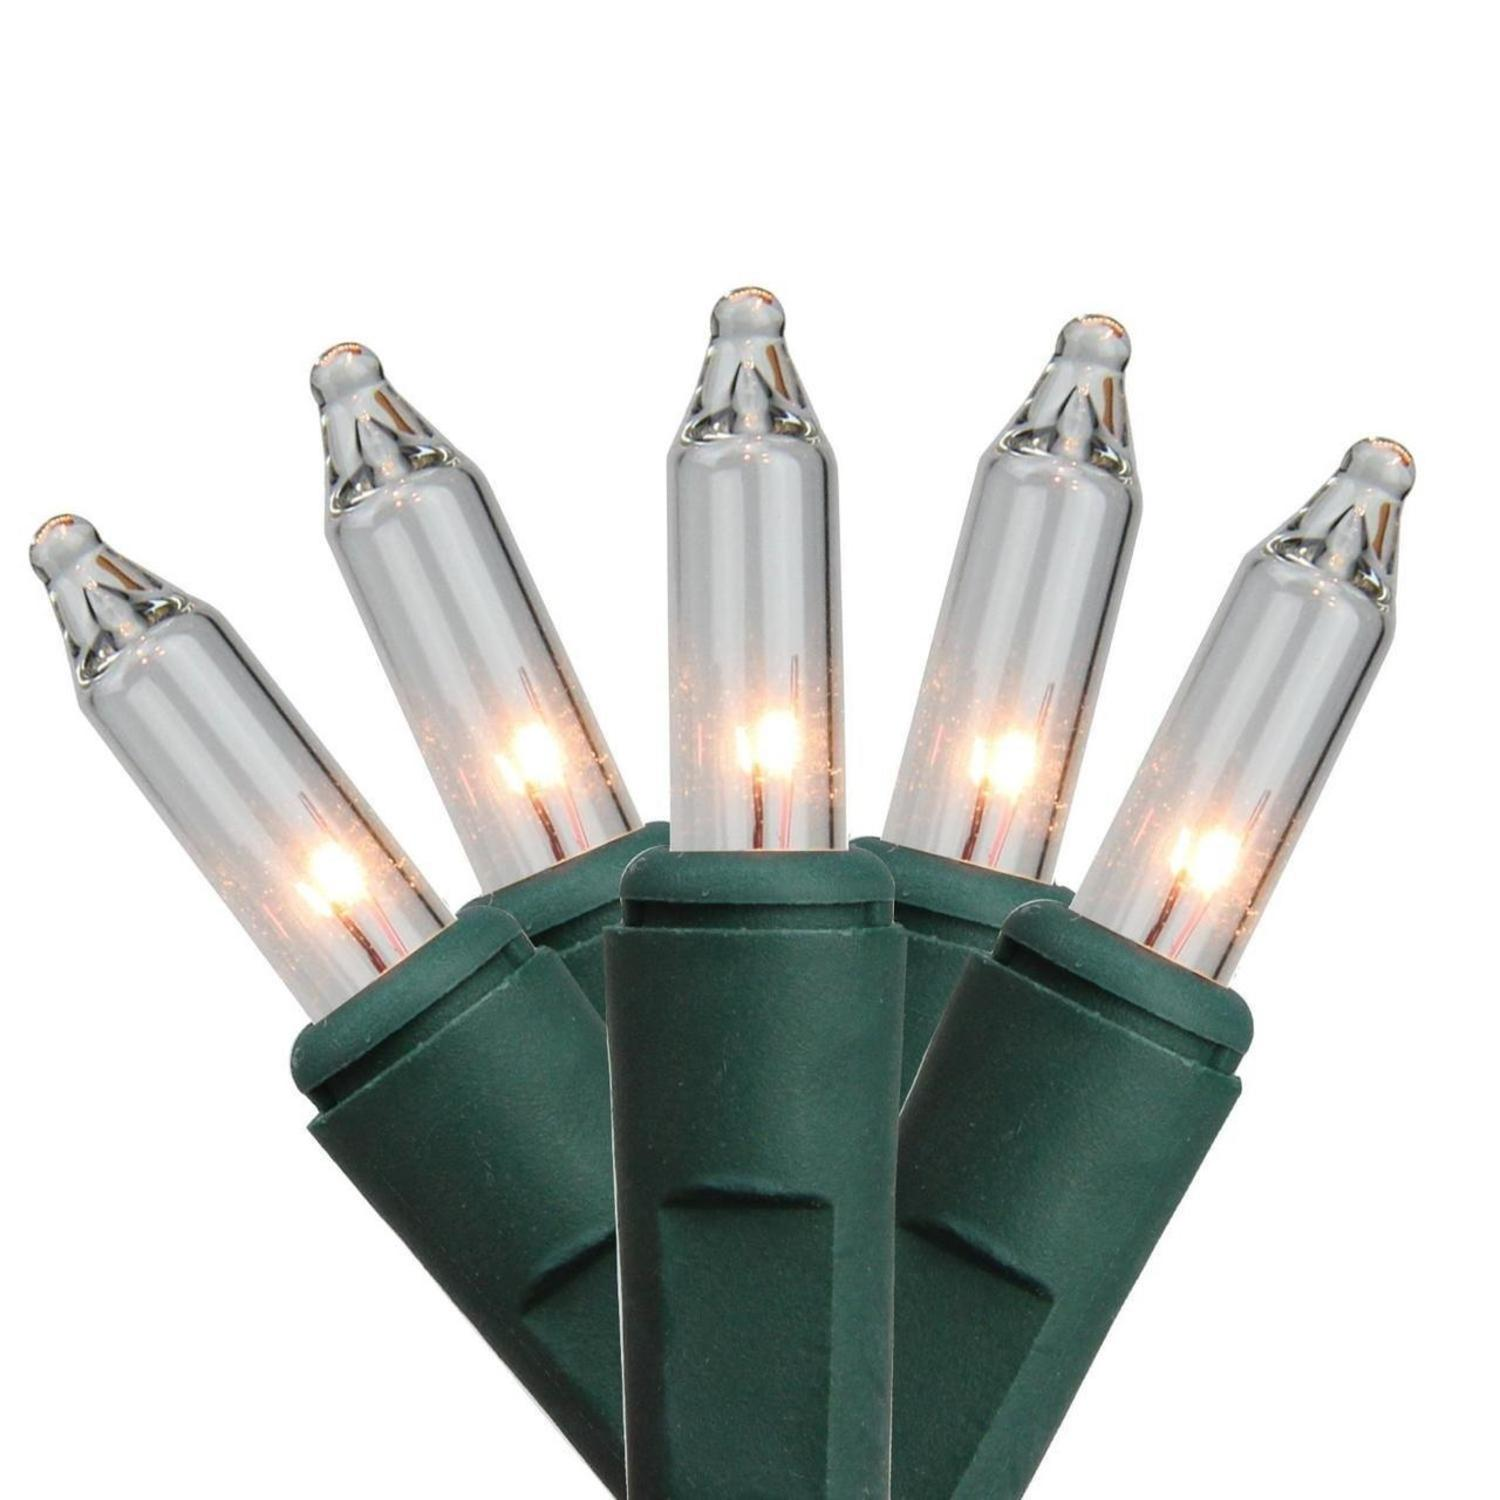 50 Battery Operated Everglow Clear Mini Christmas Lights – 6.7 ft Green Wire